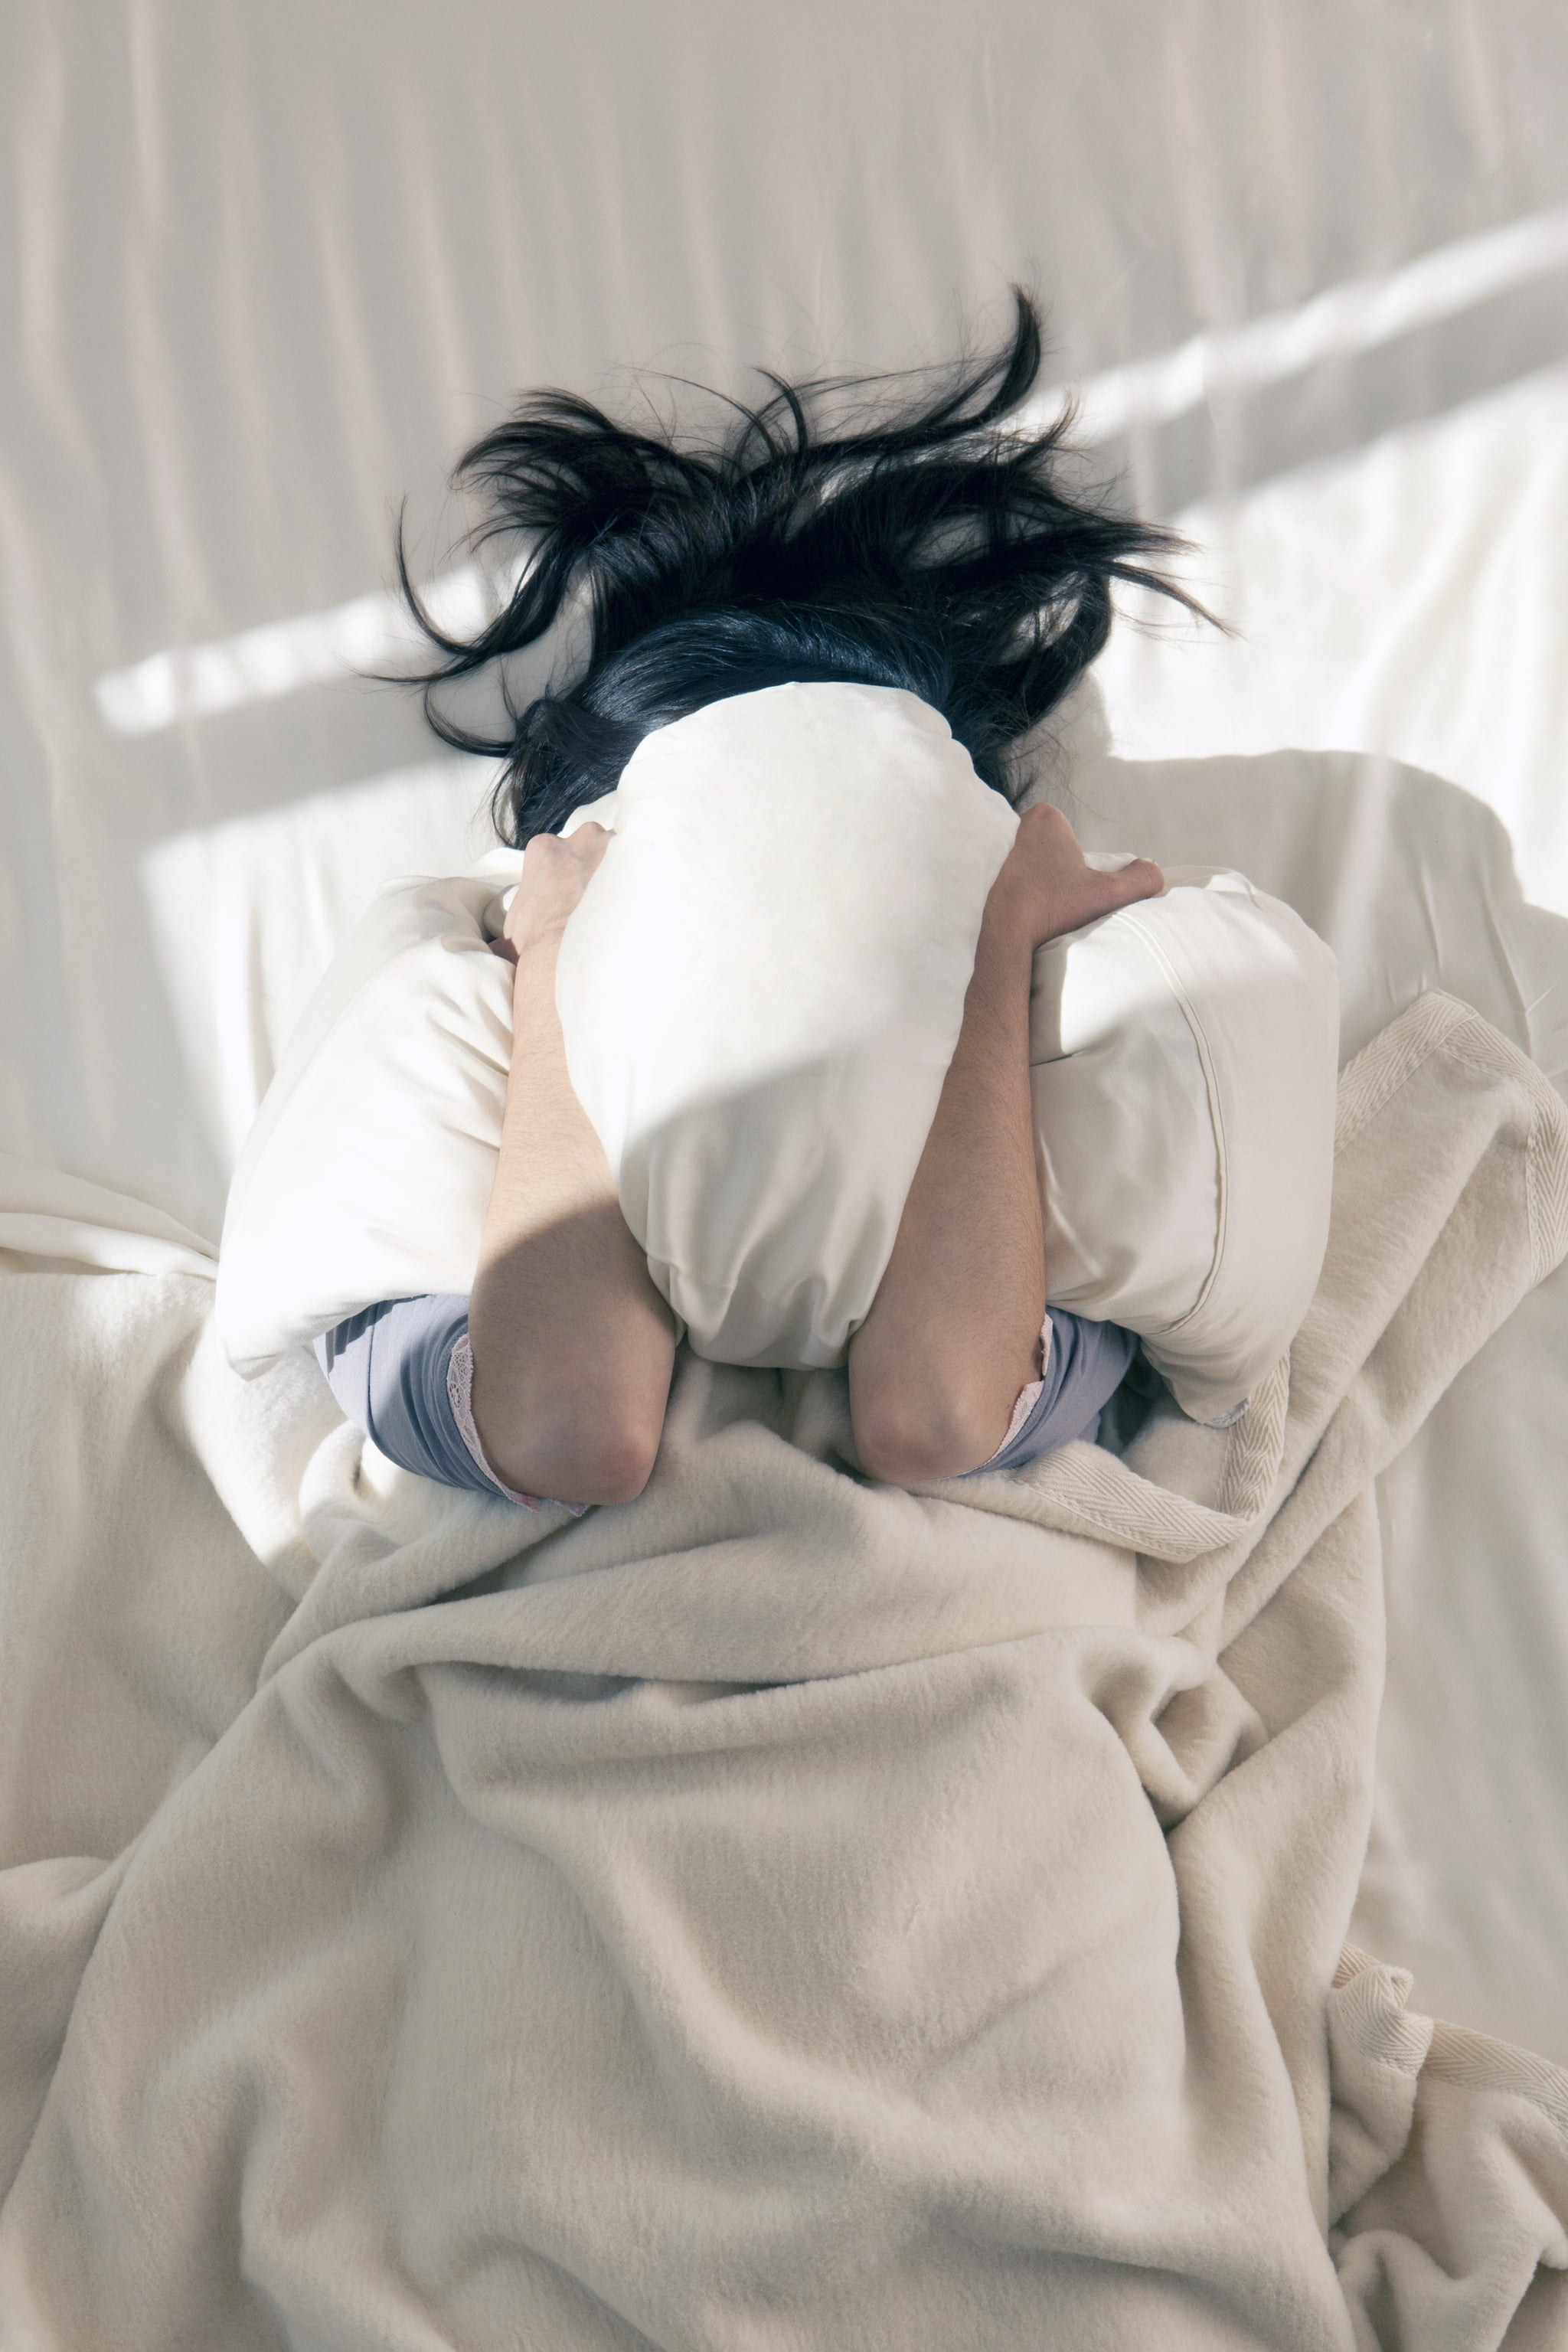 Woman covering her face with pillow beam of sunlight streams in her bedroom